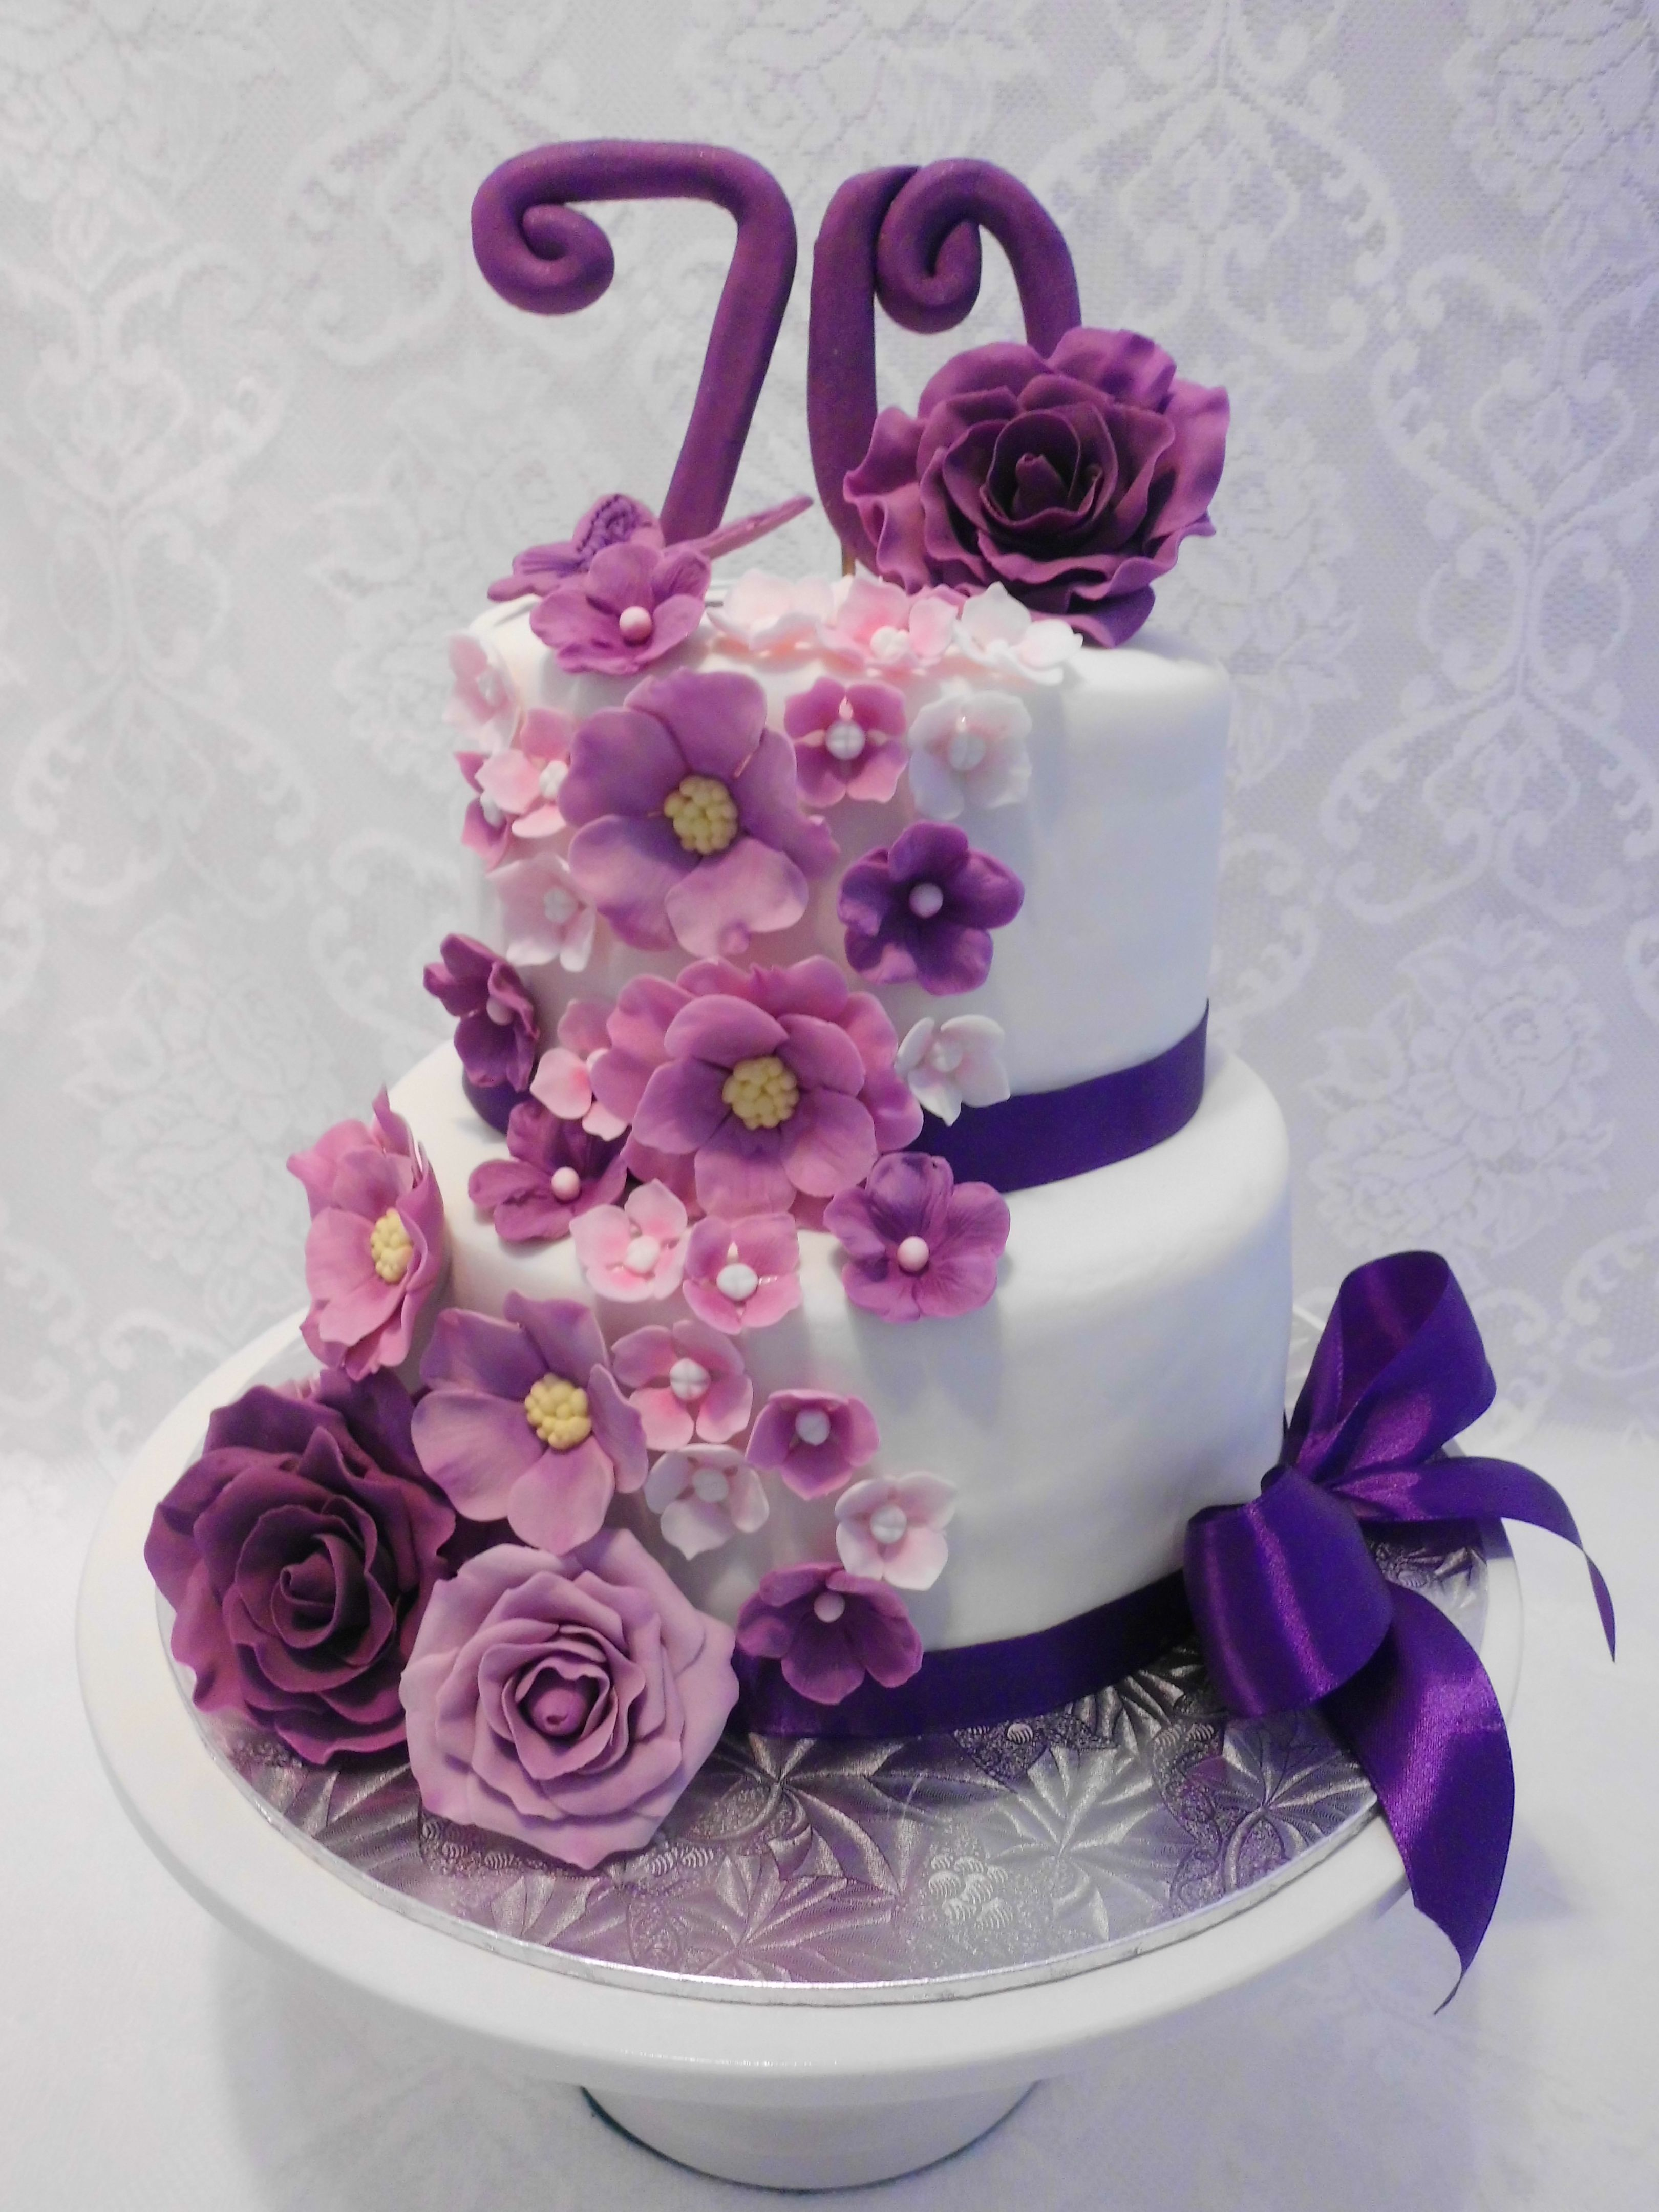 Floral Cascade in purple pink mauve 70th birthday cake for a